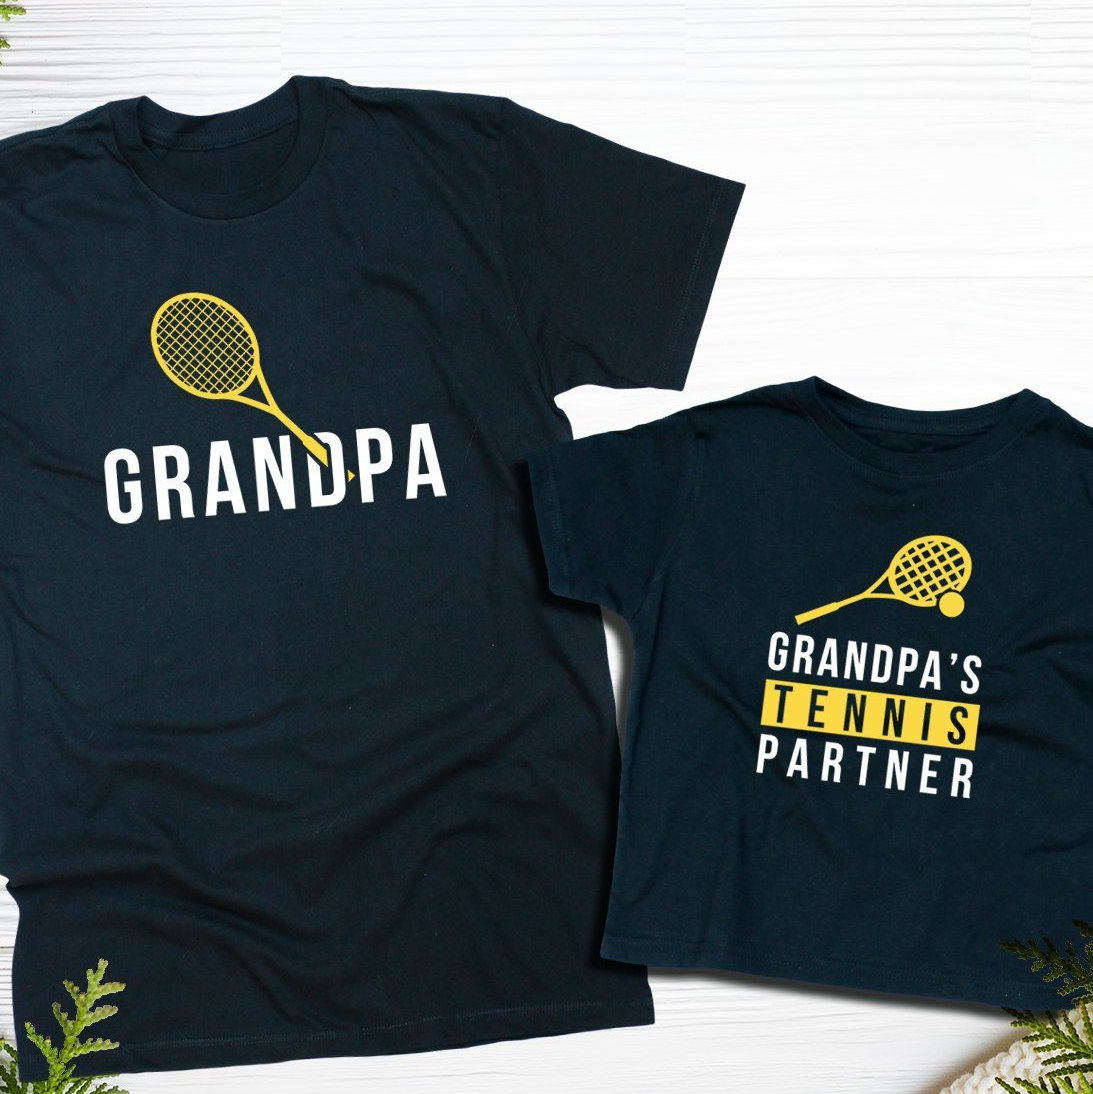 Grandpa And Grandpas Tennis Partner Papa Little Buddy Graphic Matching T-shirts Family Outfit Funny Birthday Gift Personalized Custom Name Unisex Tshirt